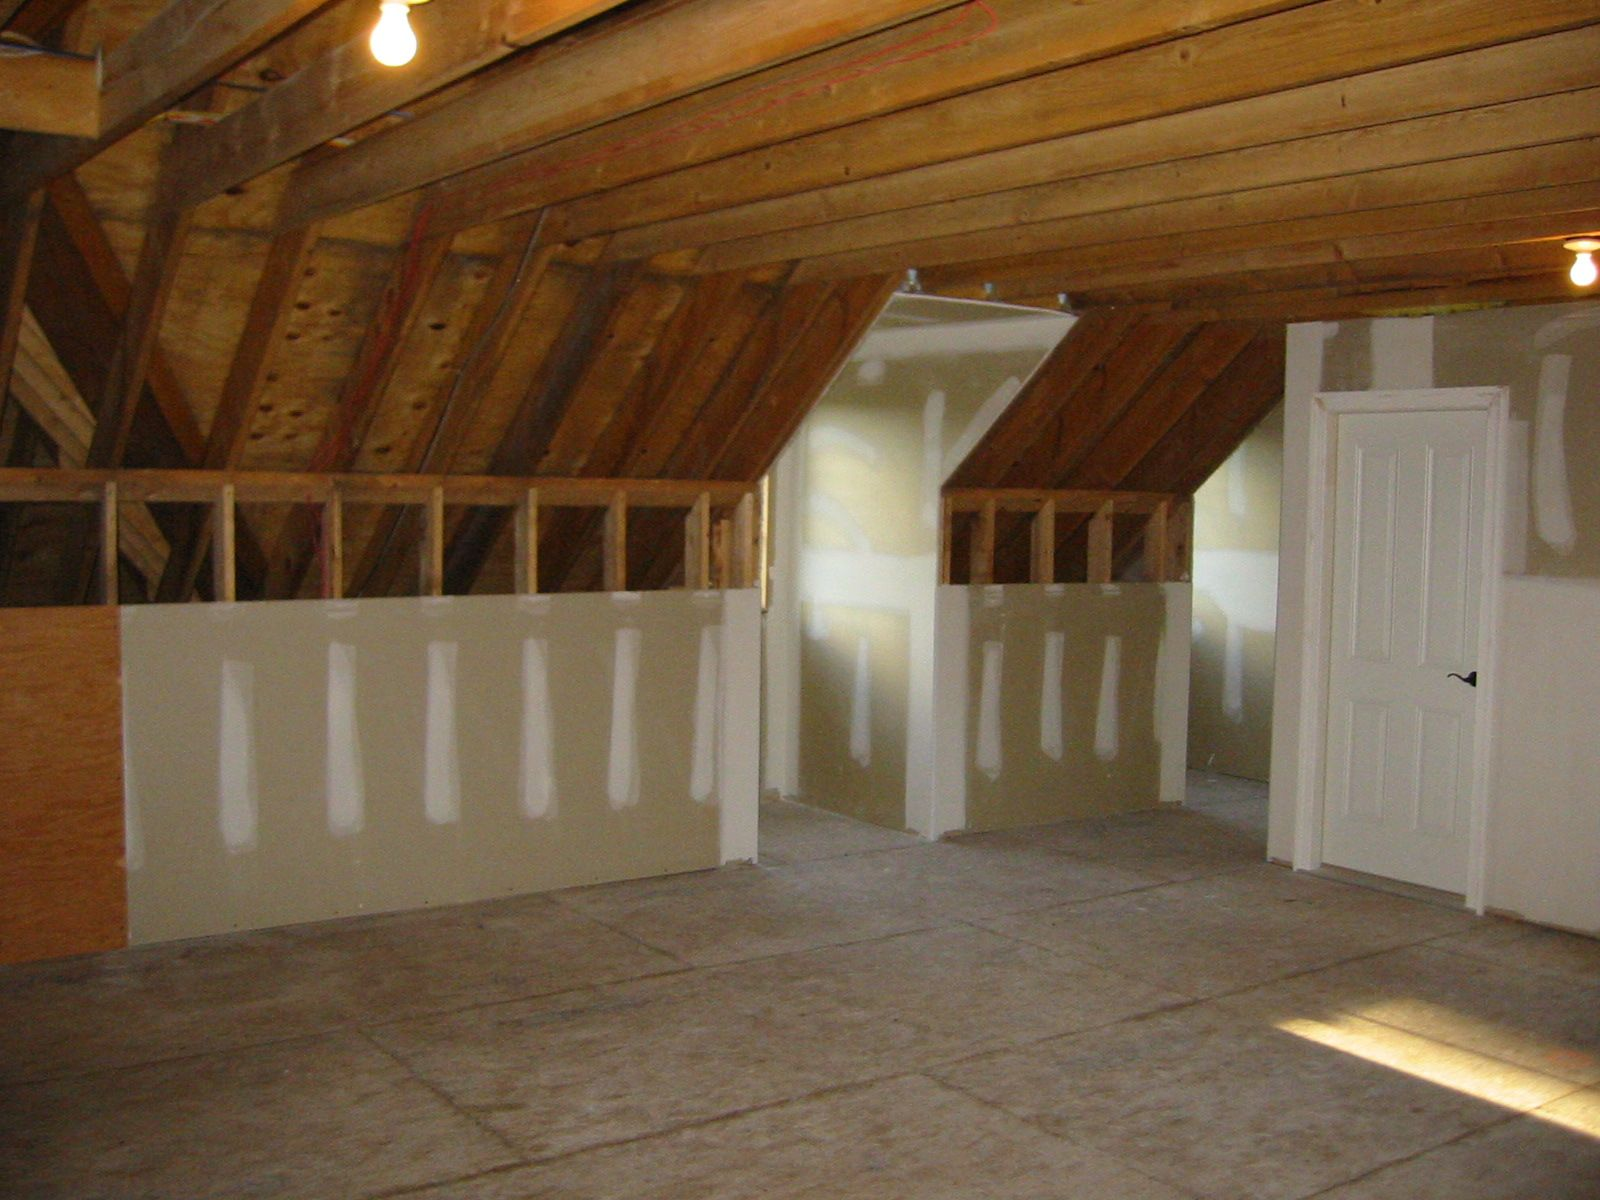 Remodeling Unfinished Attic Space Can Be A Great Way To